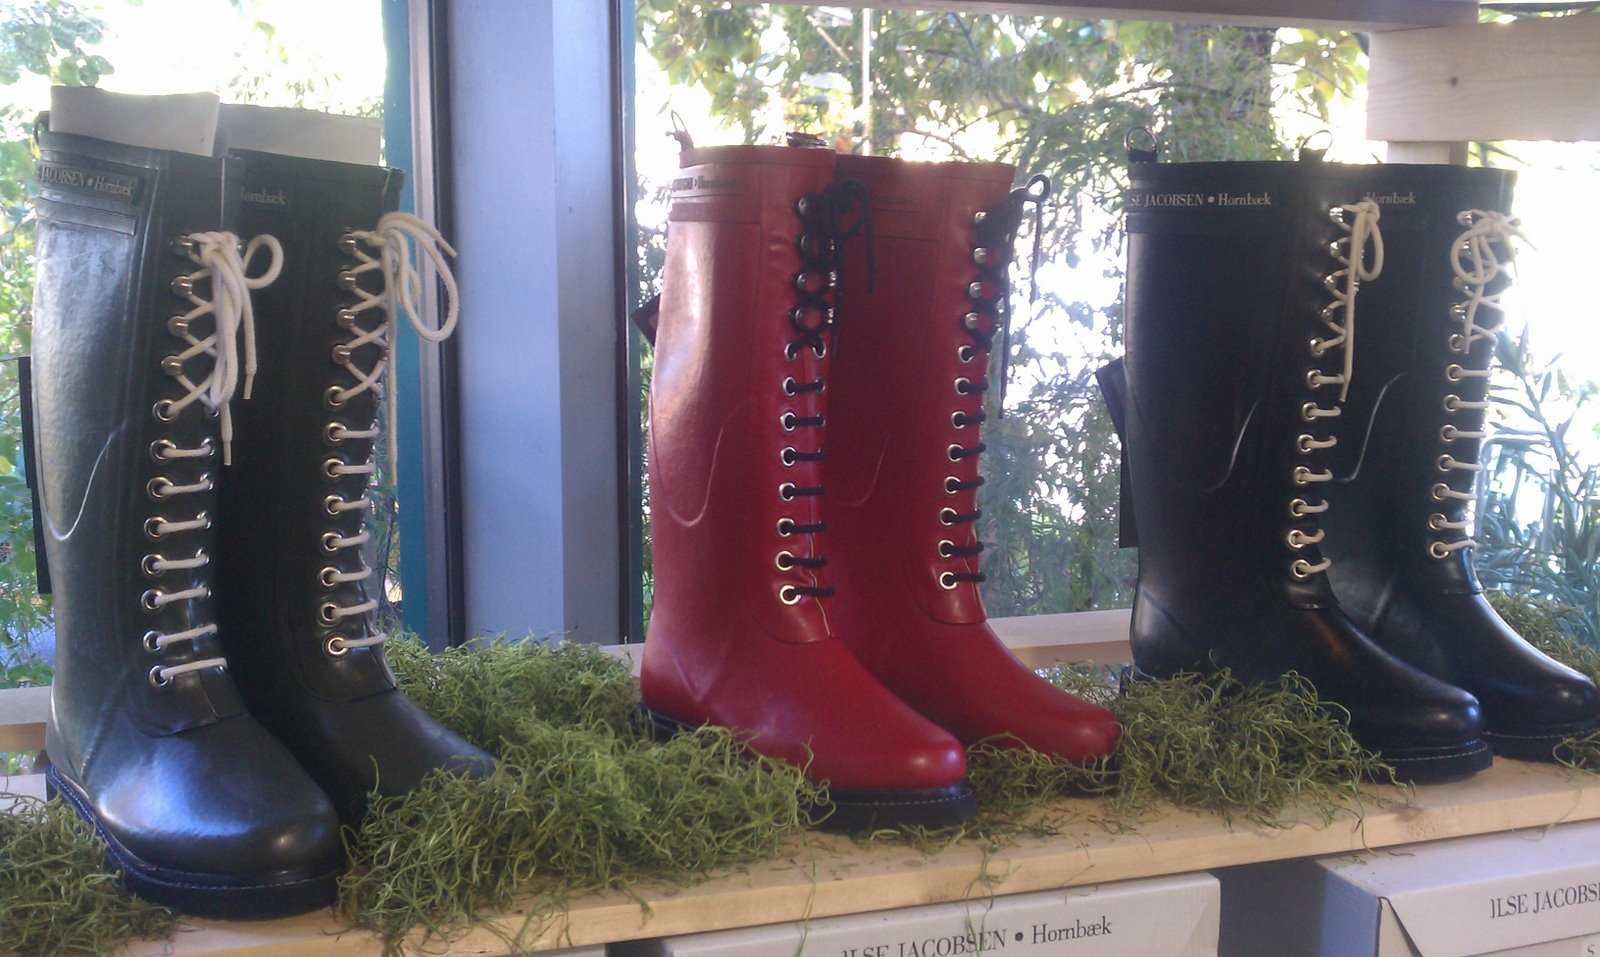 fancy a lovely garden boot or just something functional yet cute for the rainy season run donu0027t walk to our east blithedale avenue store in mill valley